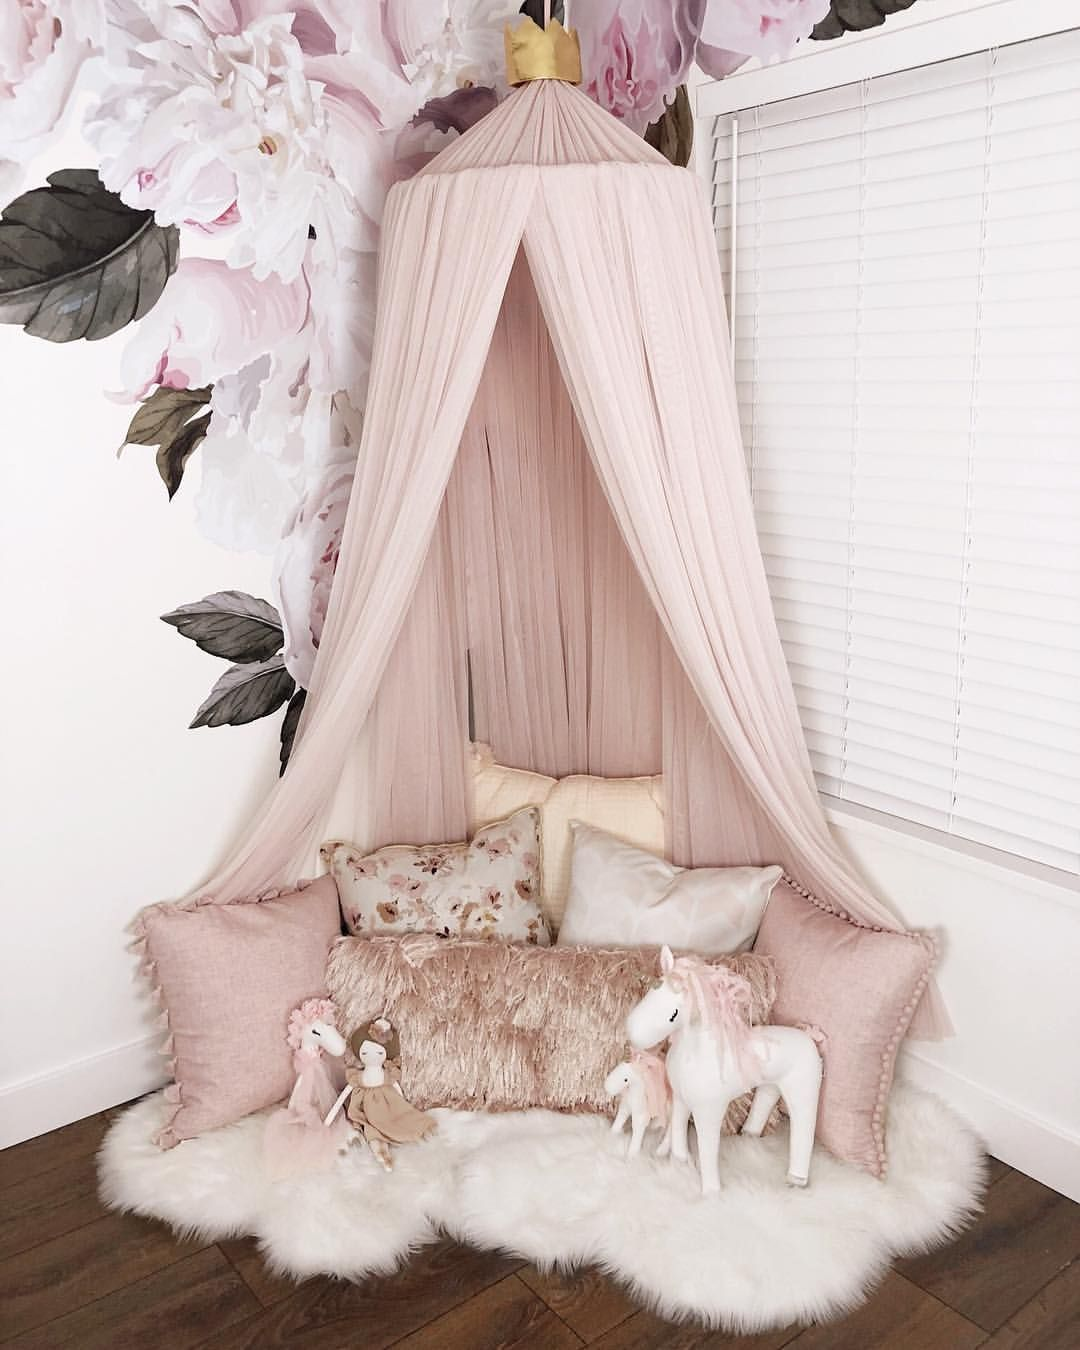 Emmalyn S New Pale Pink Canopy From Spinkiebaby Ig Ginabourne